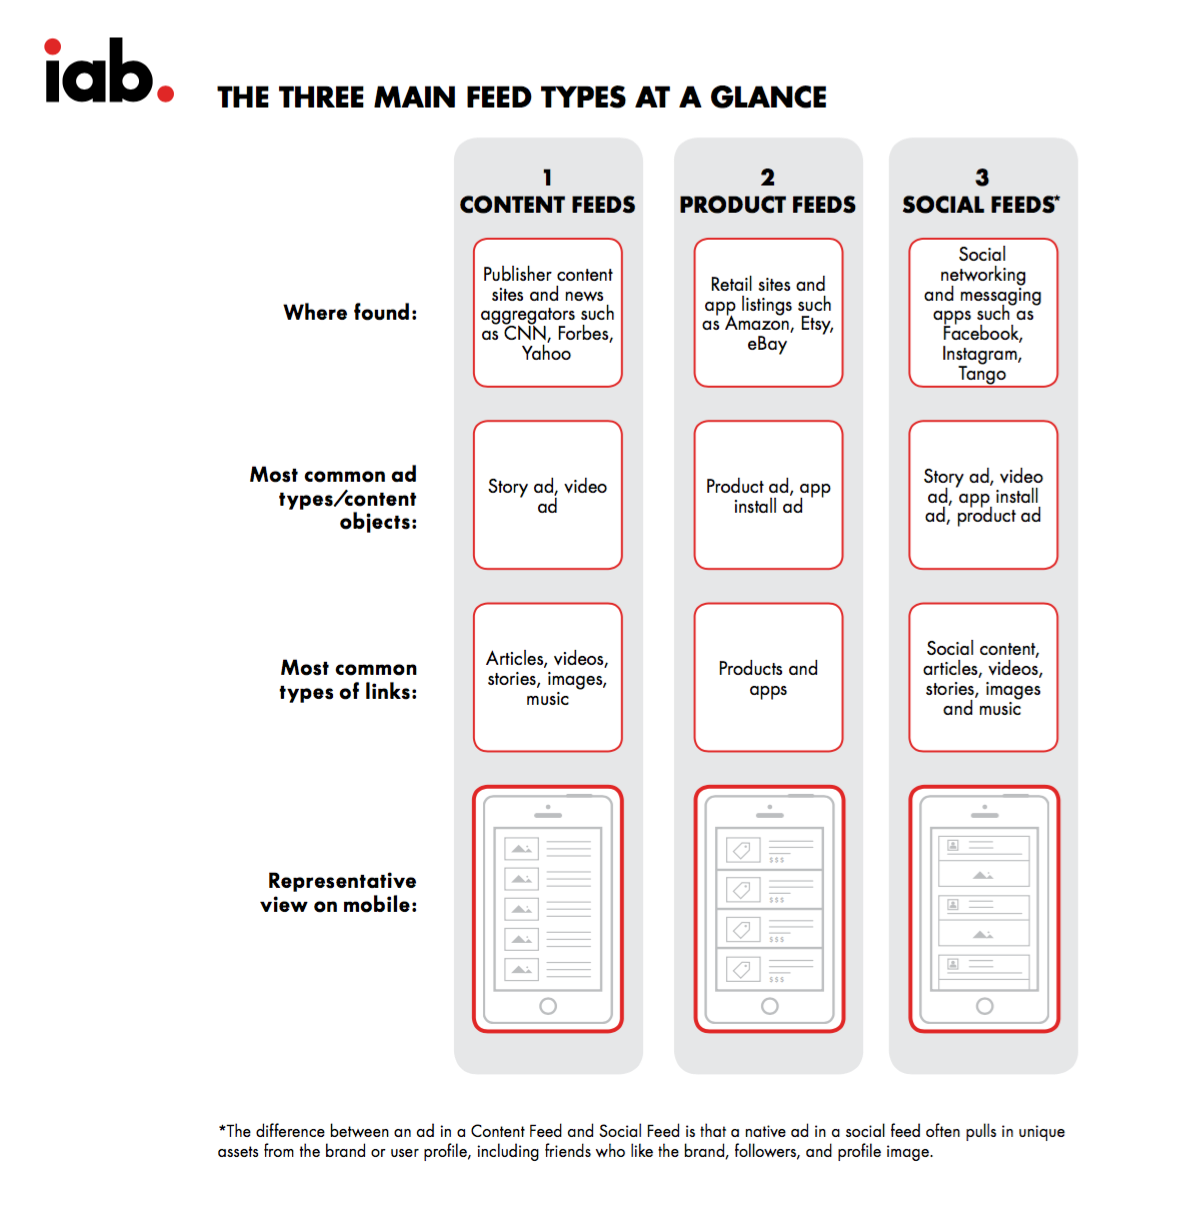 IAB in-feed ad types: content feeds, product feeds, social feeds